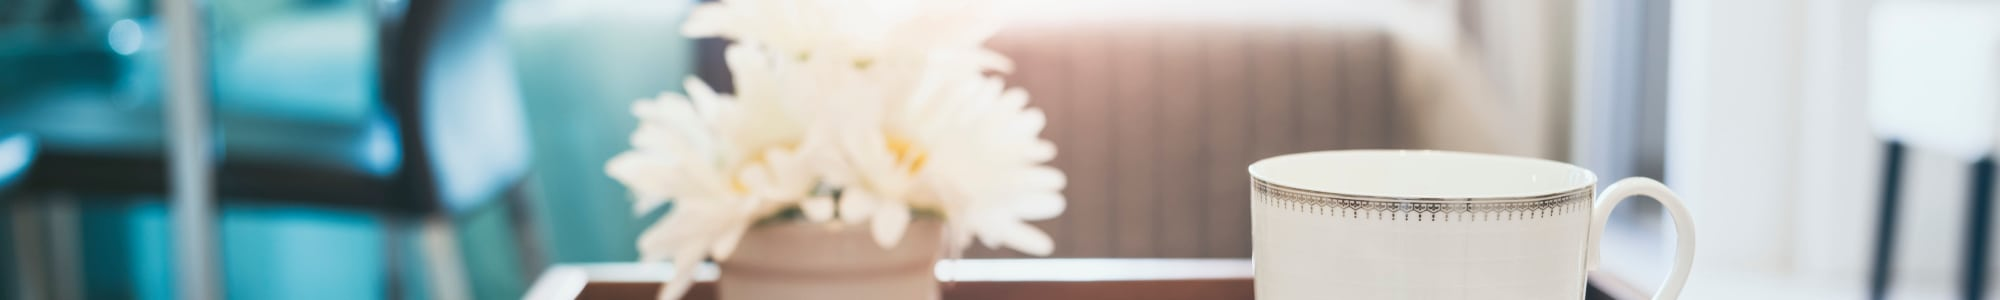 Enjoy a cup of coffee in your new home at Beech Meadow Apartments